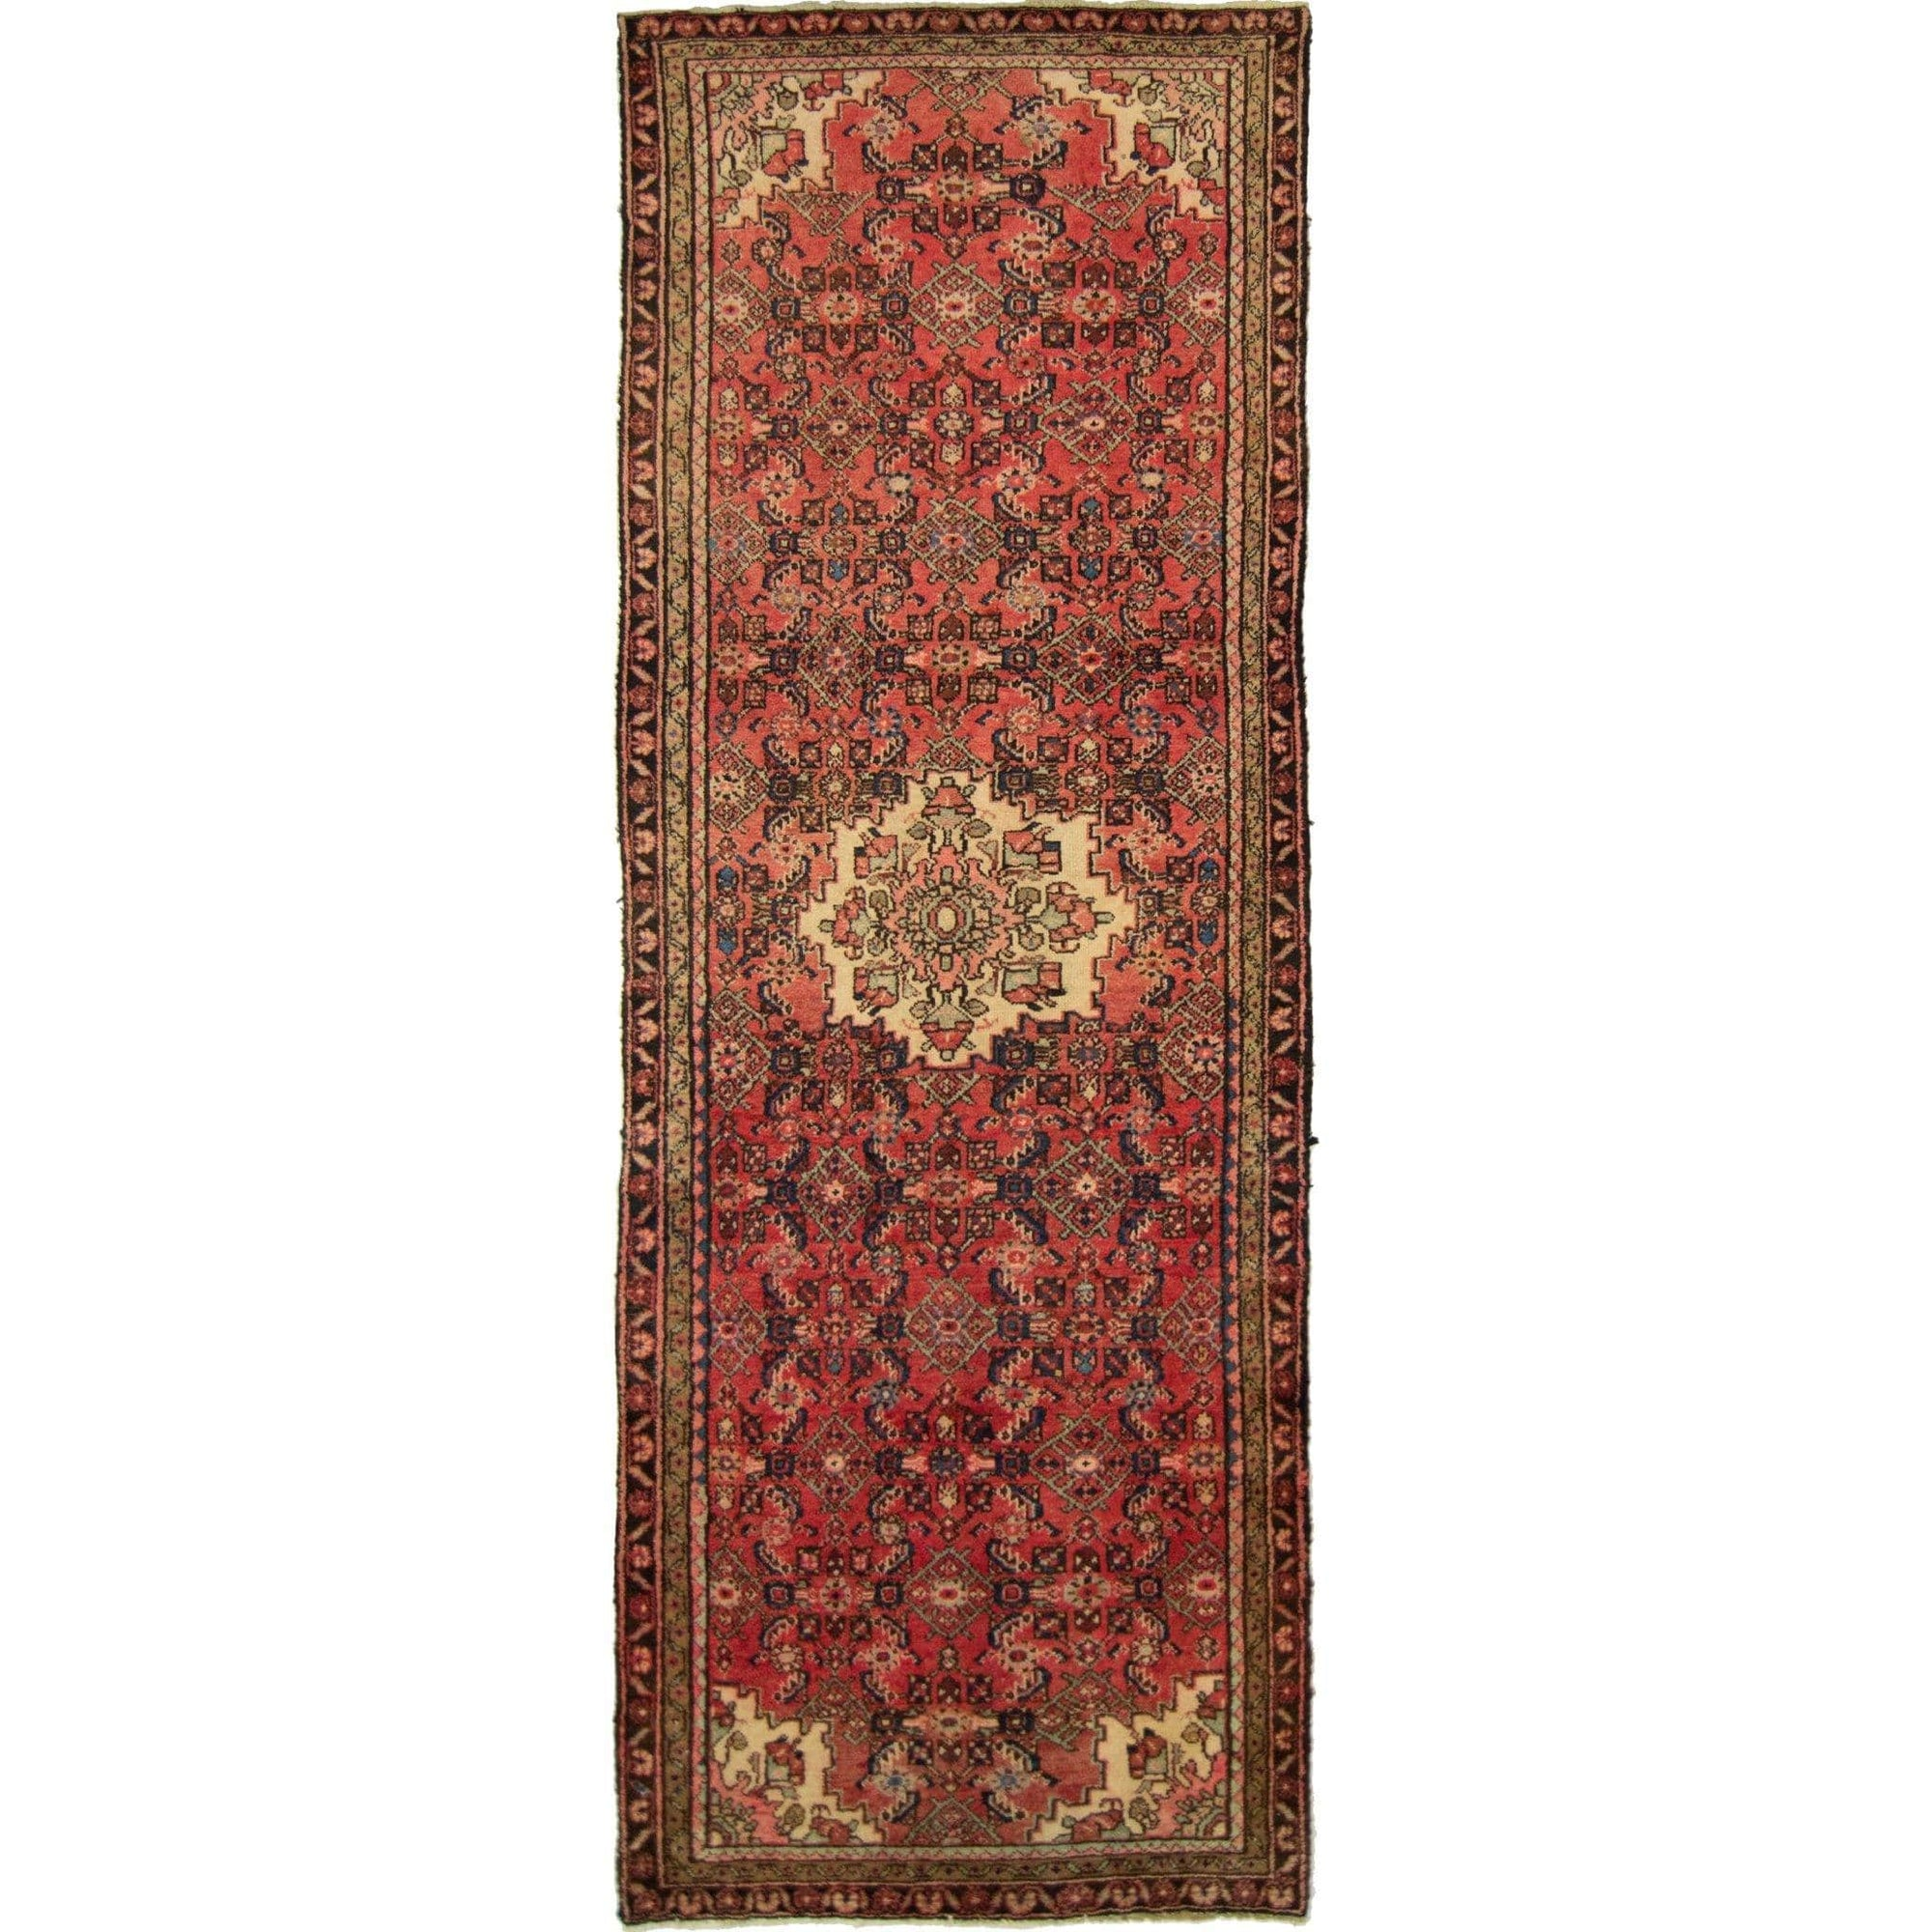 Hand-knotted Tribal Persian Wool Hamadan Runner 100cm x 293cm Persian-Rug | House-of-Haghi | NewMarket | Auckland | NZ | Handmade Persian Rugs | Hand Knotted Persian Rugs